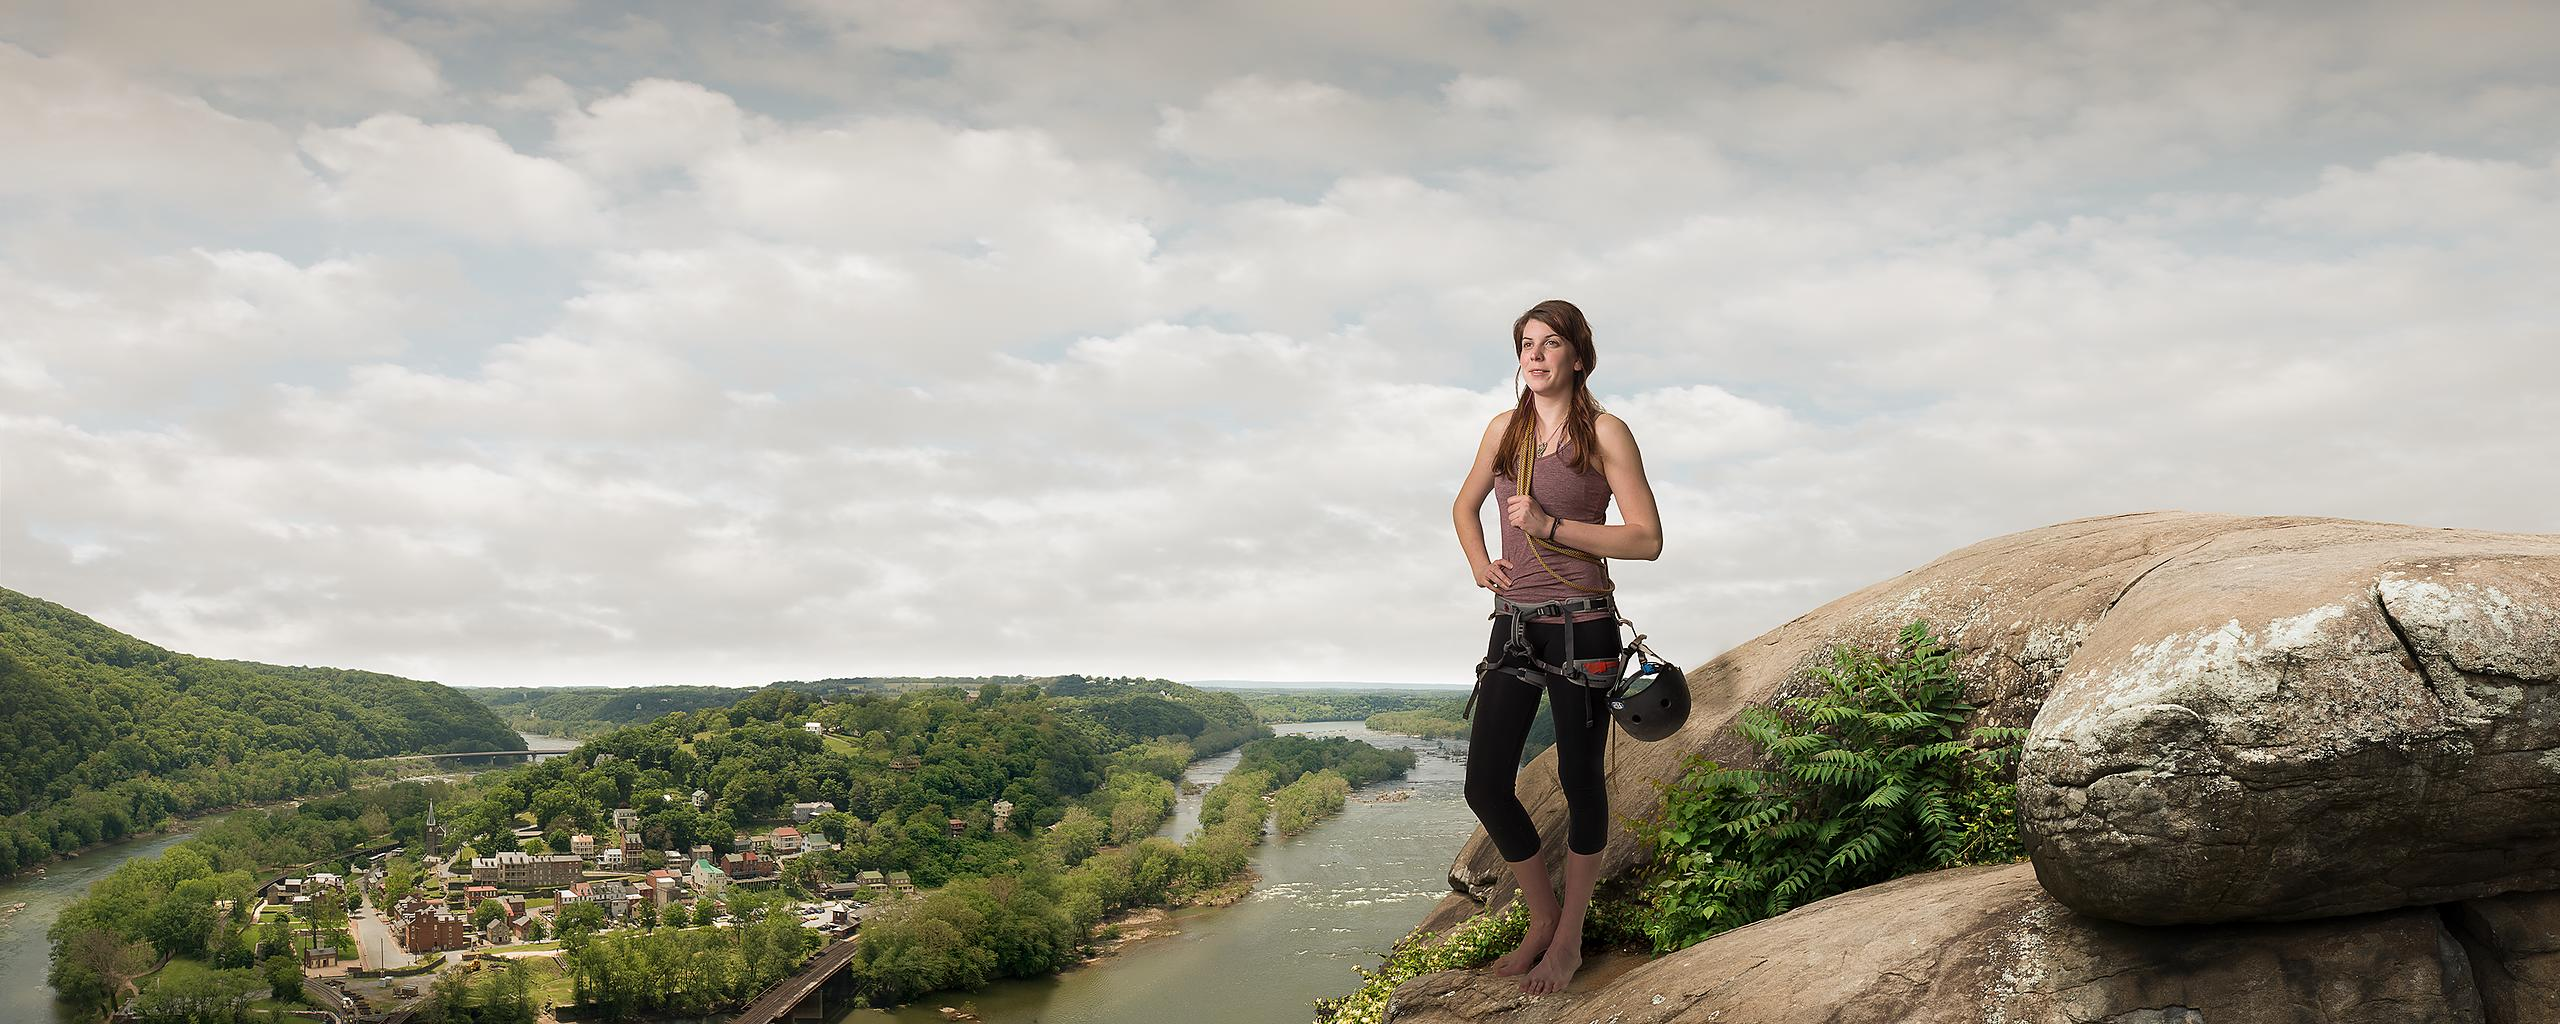 001-COM15018_Harpers_Ferry_Climber_-_Preview